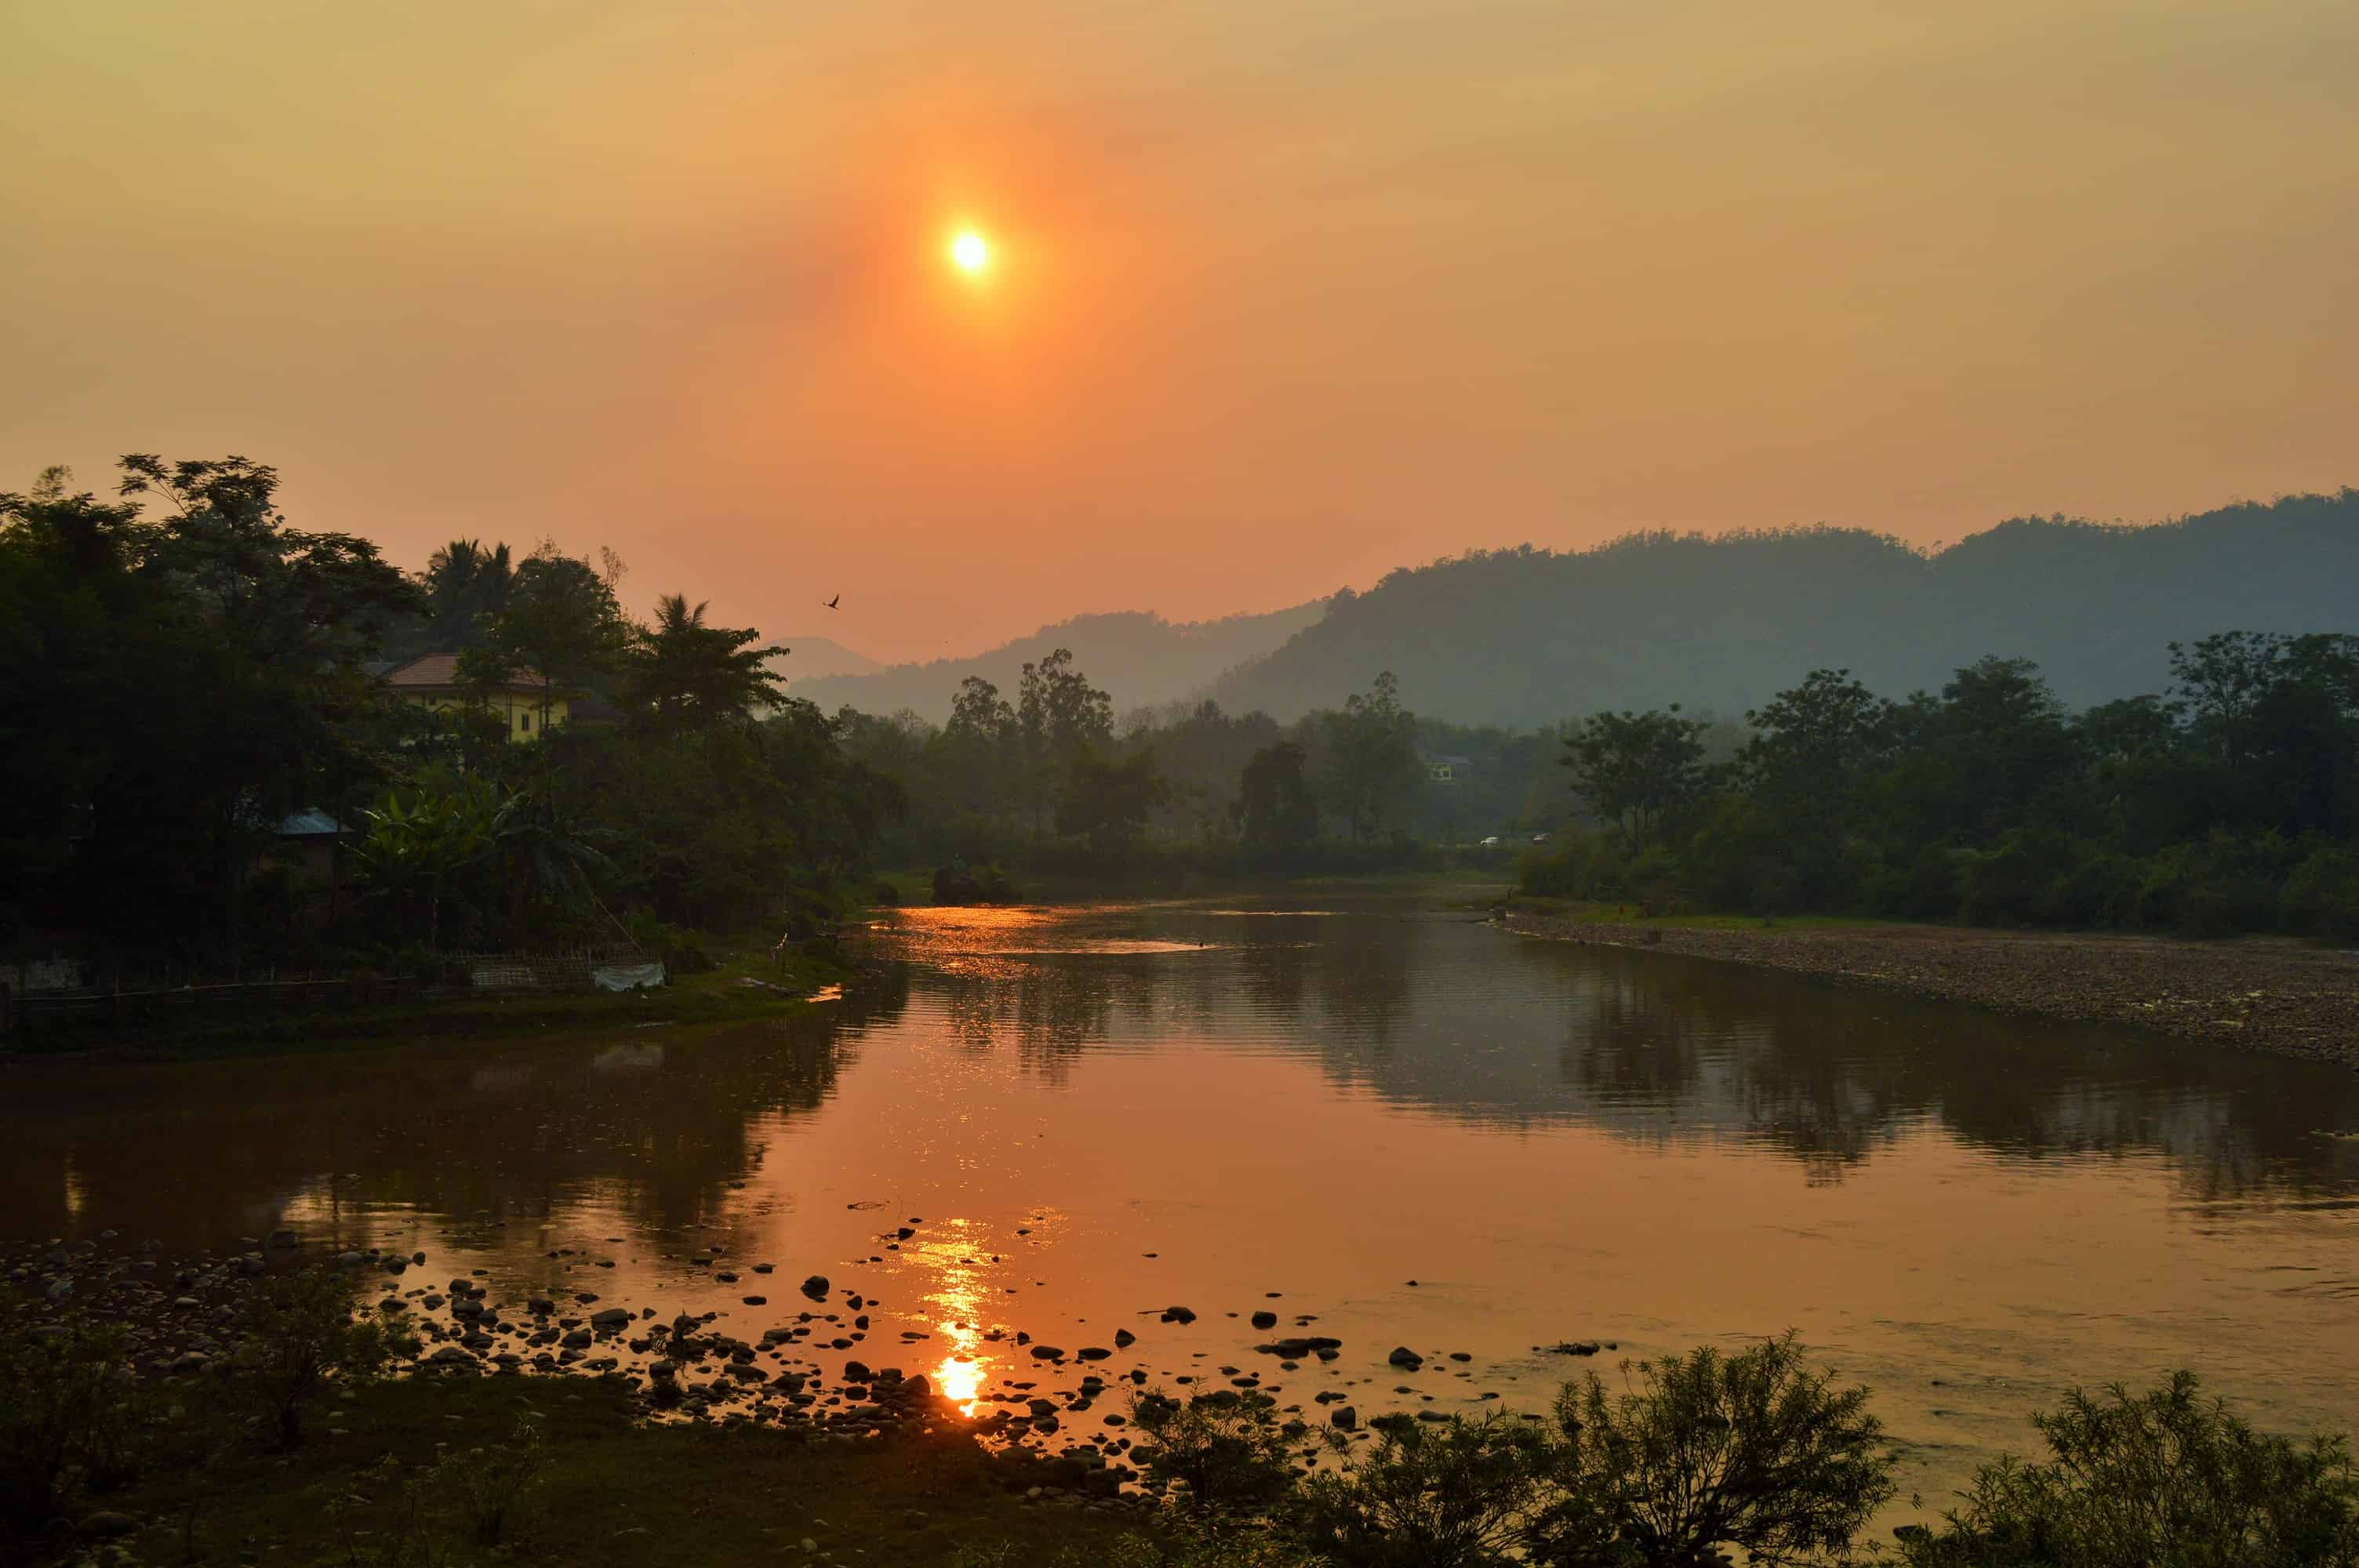 Sunset at Muang La in northern Laos